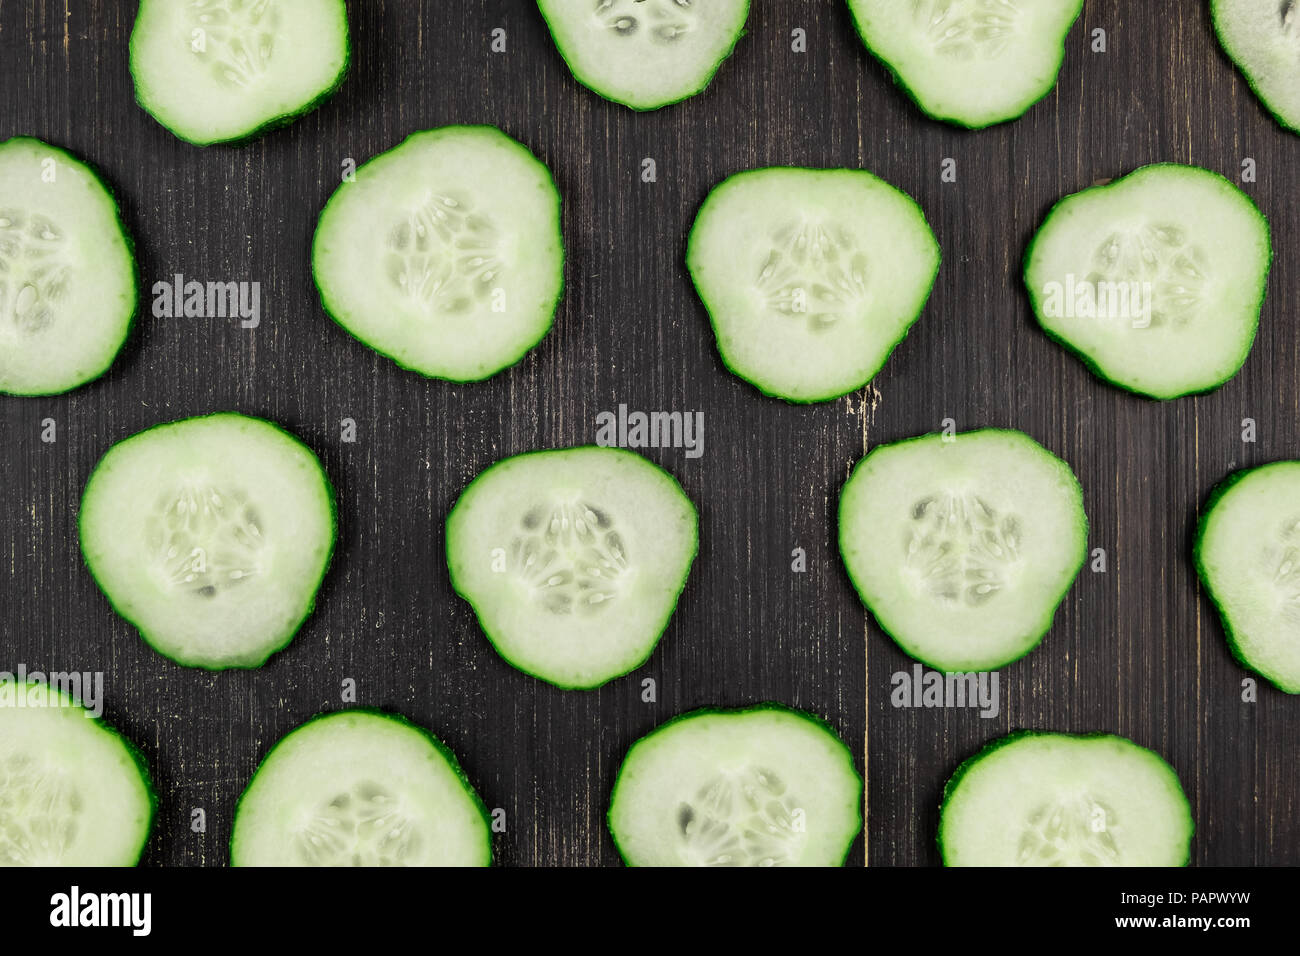 Fresh sliced cucumbers on black wood rustic background, top view. Flat lay pattern of green cucumbers on table, close-up - Stock Image